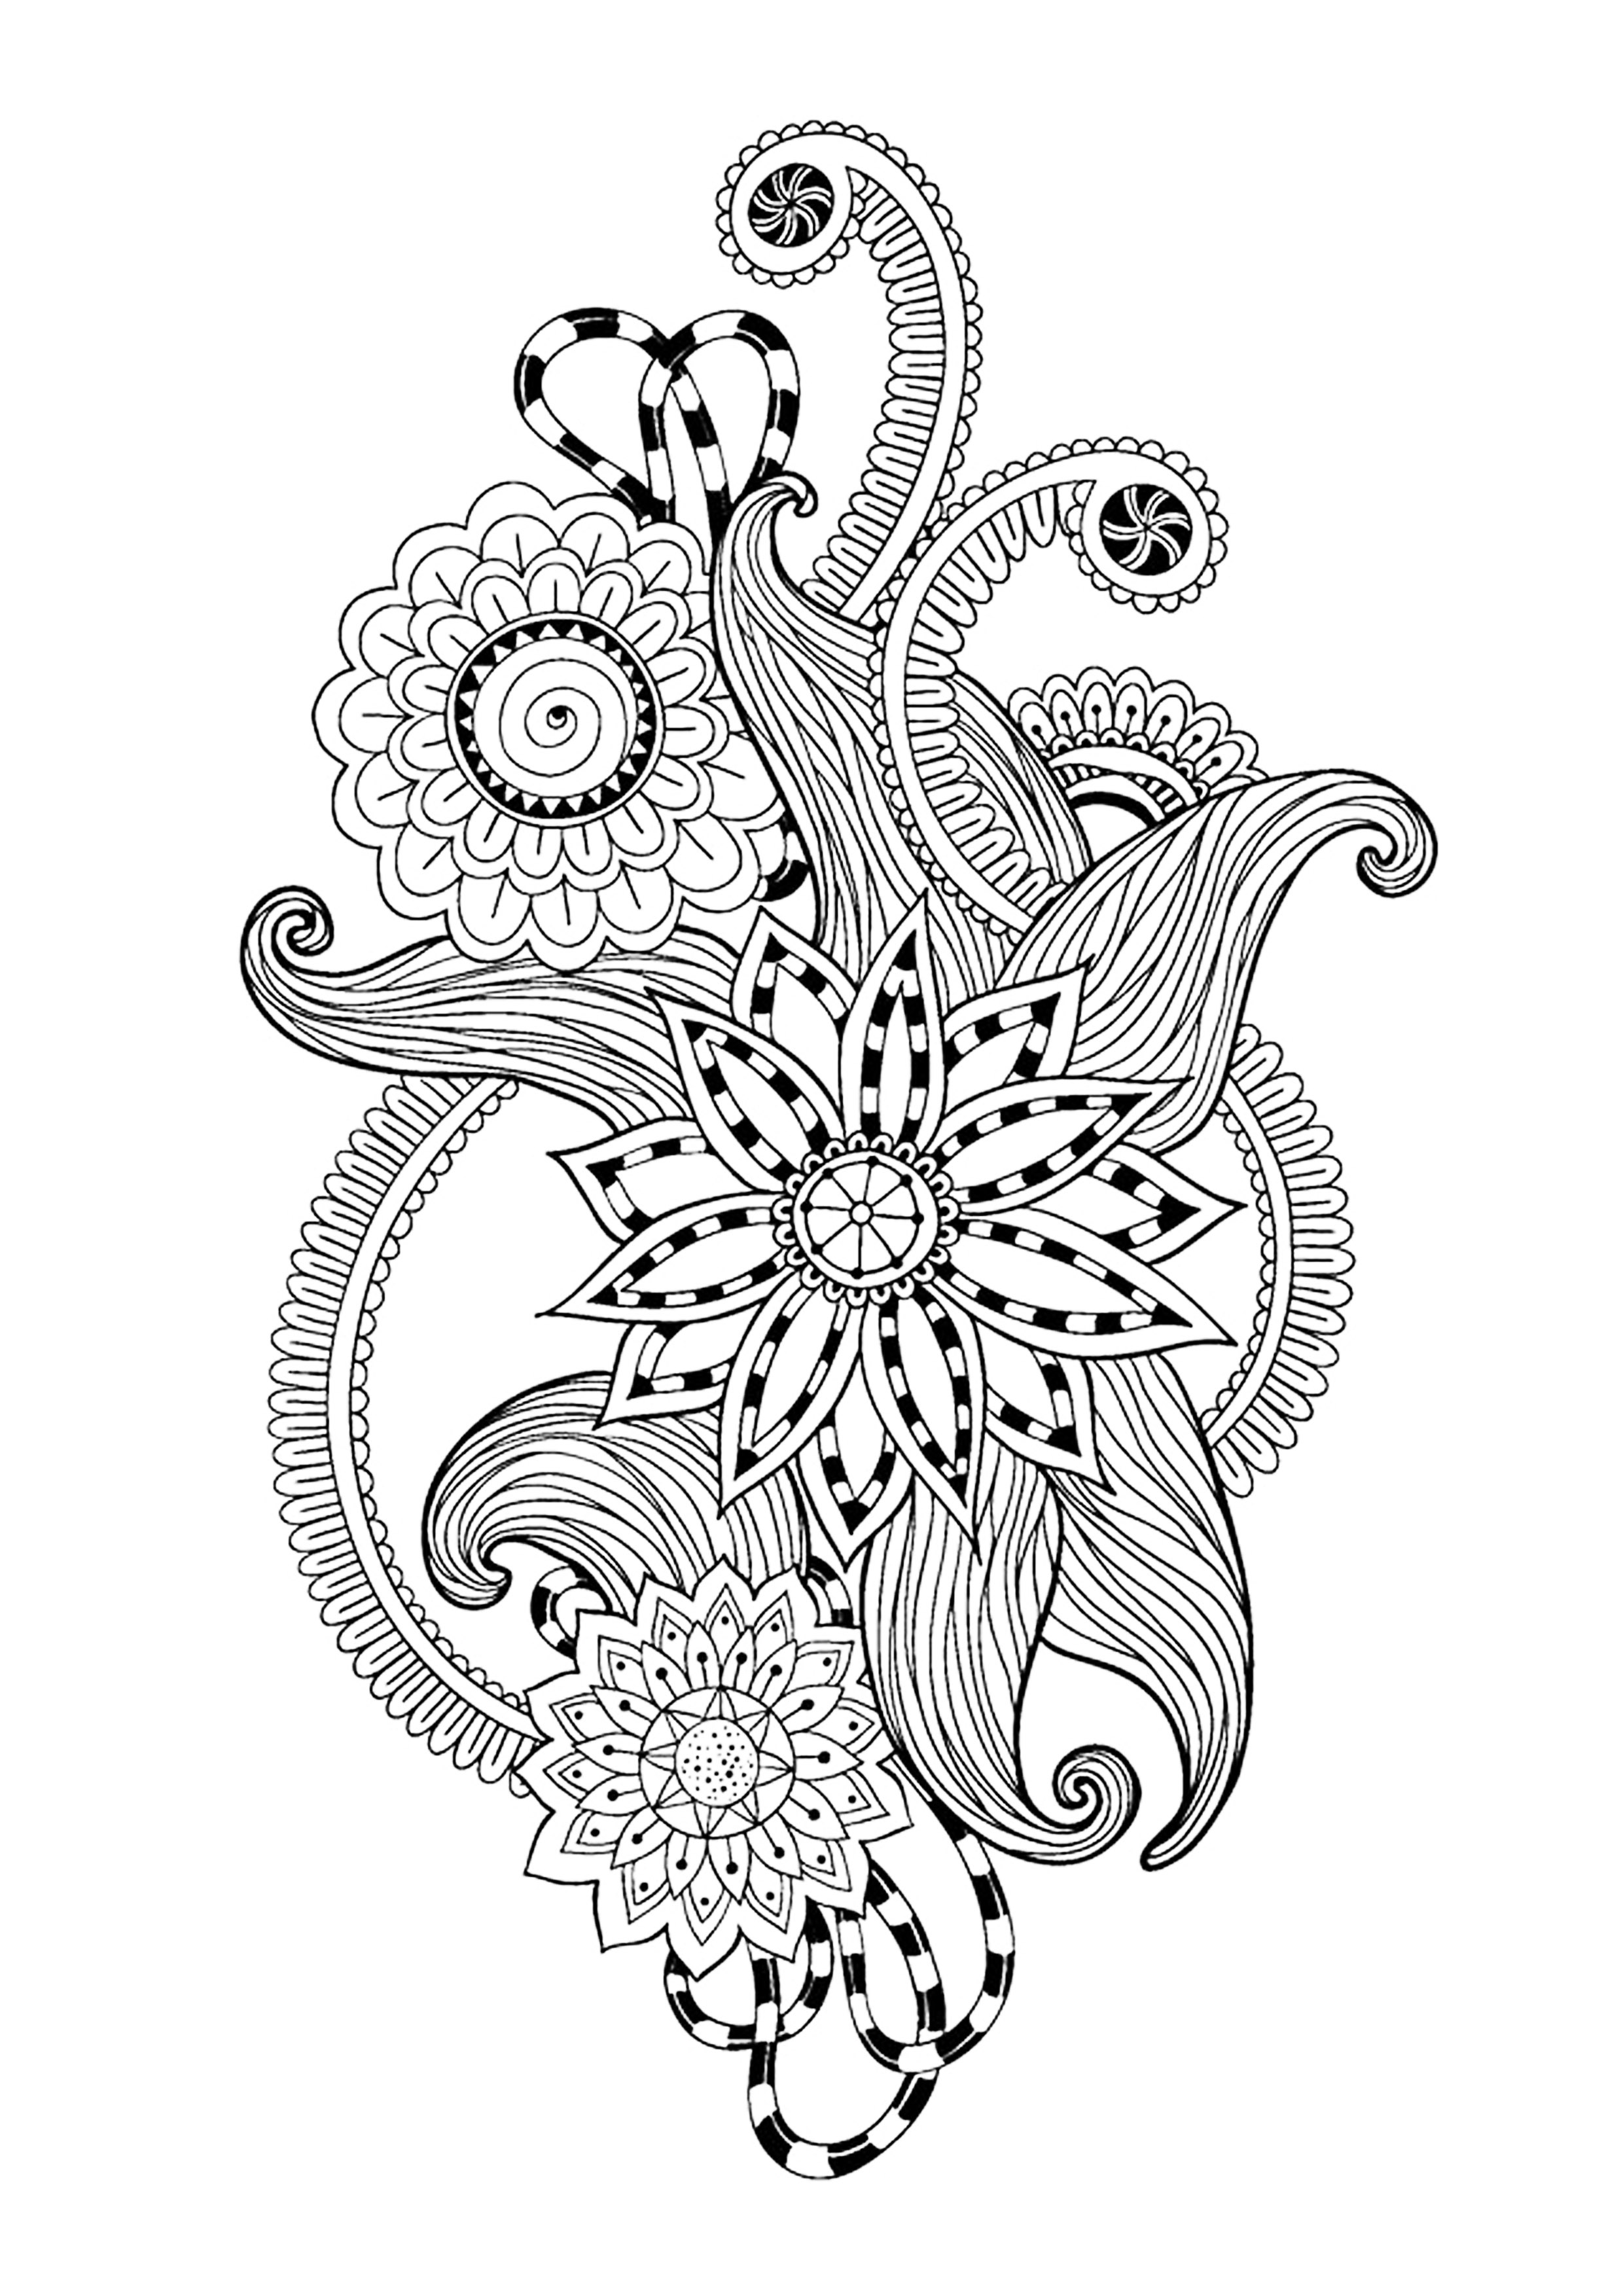 coloring pages about zen - photo#31